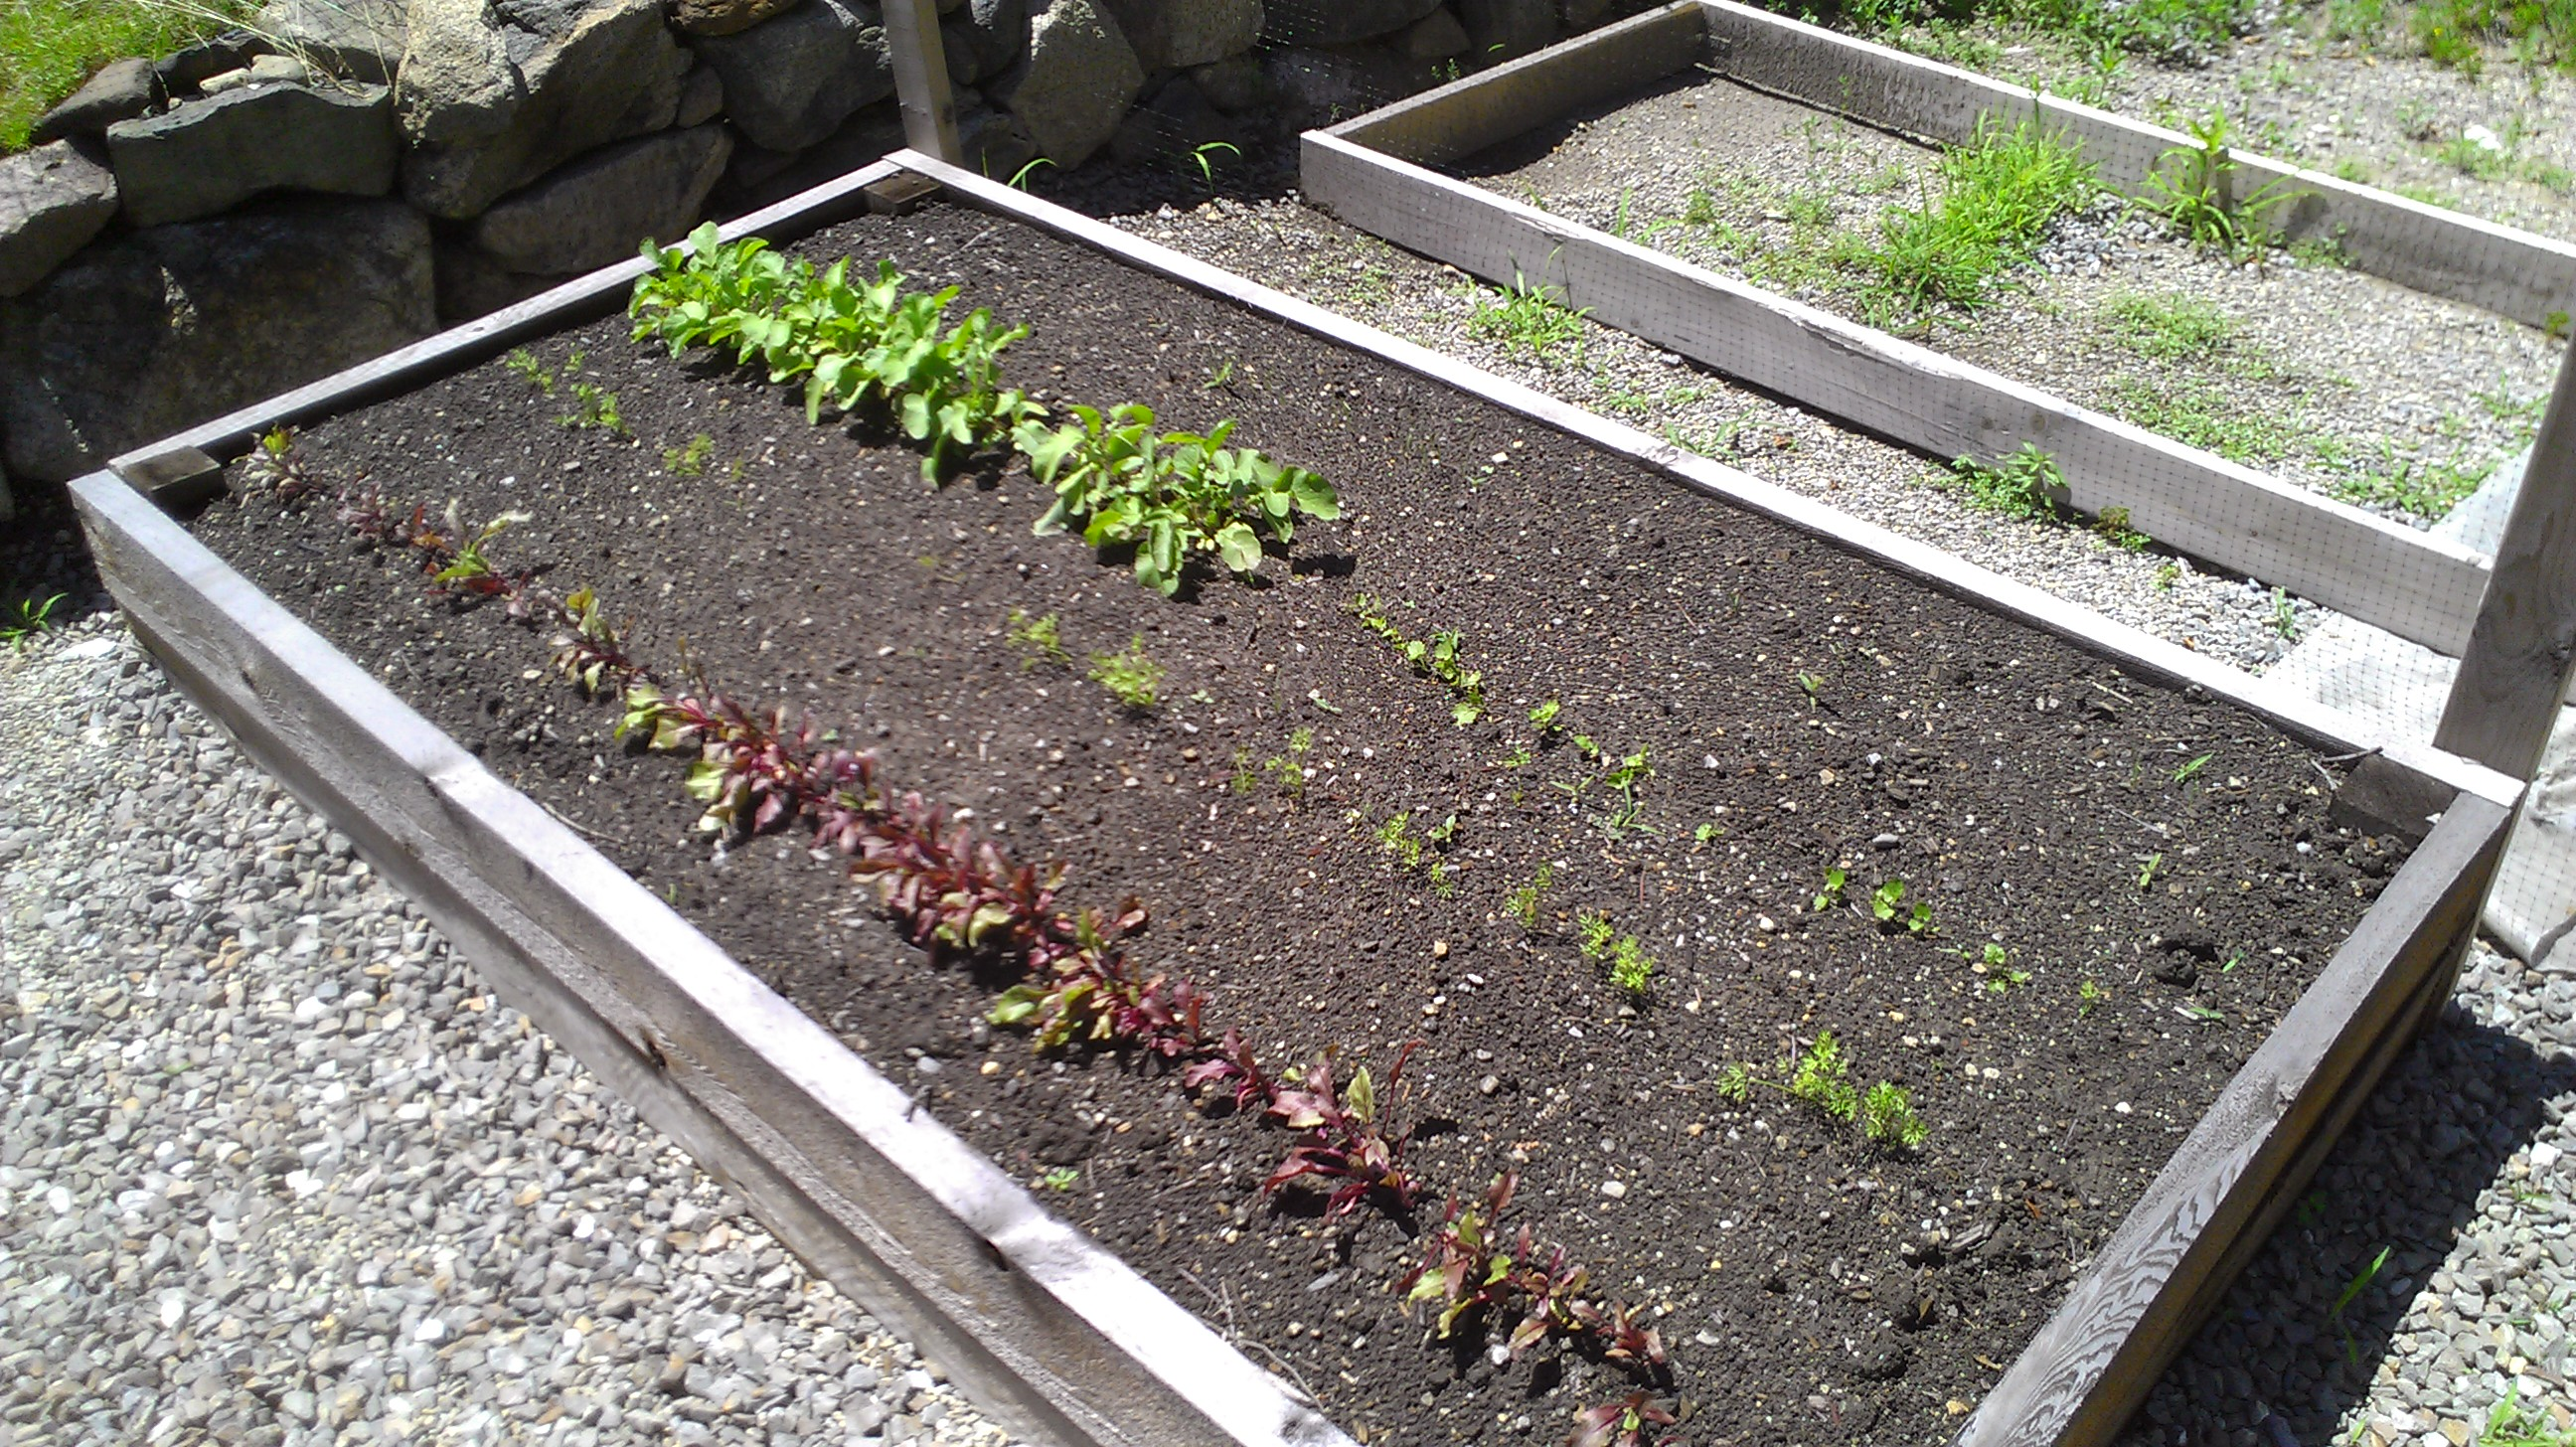 Radishes, parsnips, carrots and beets